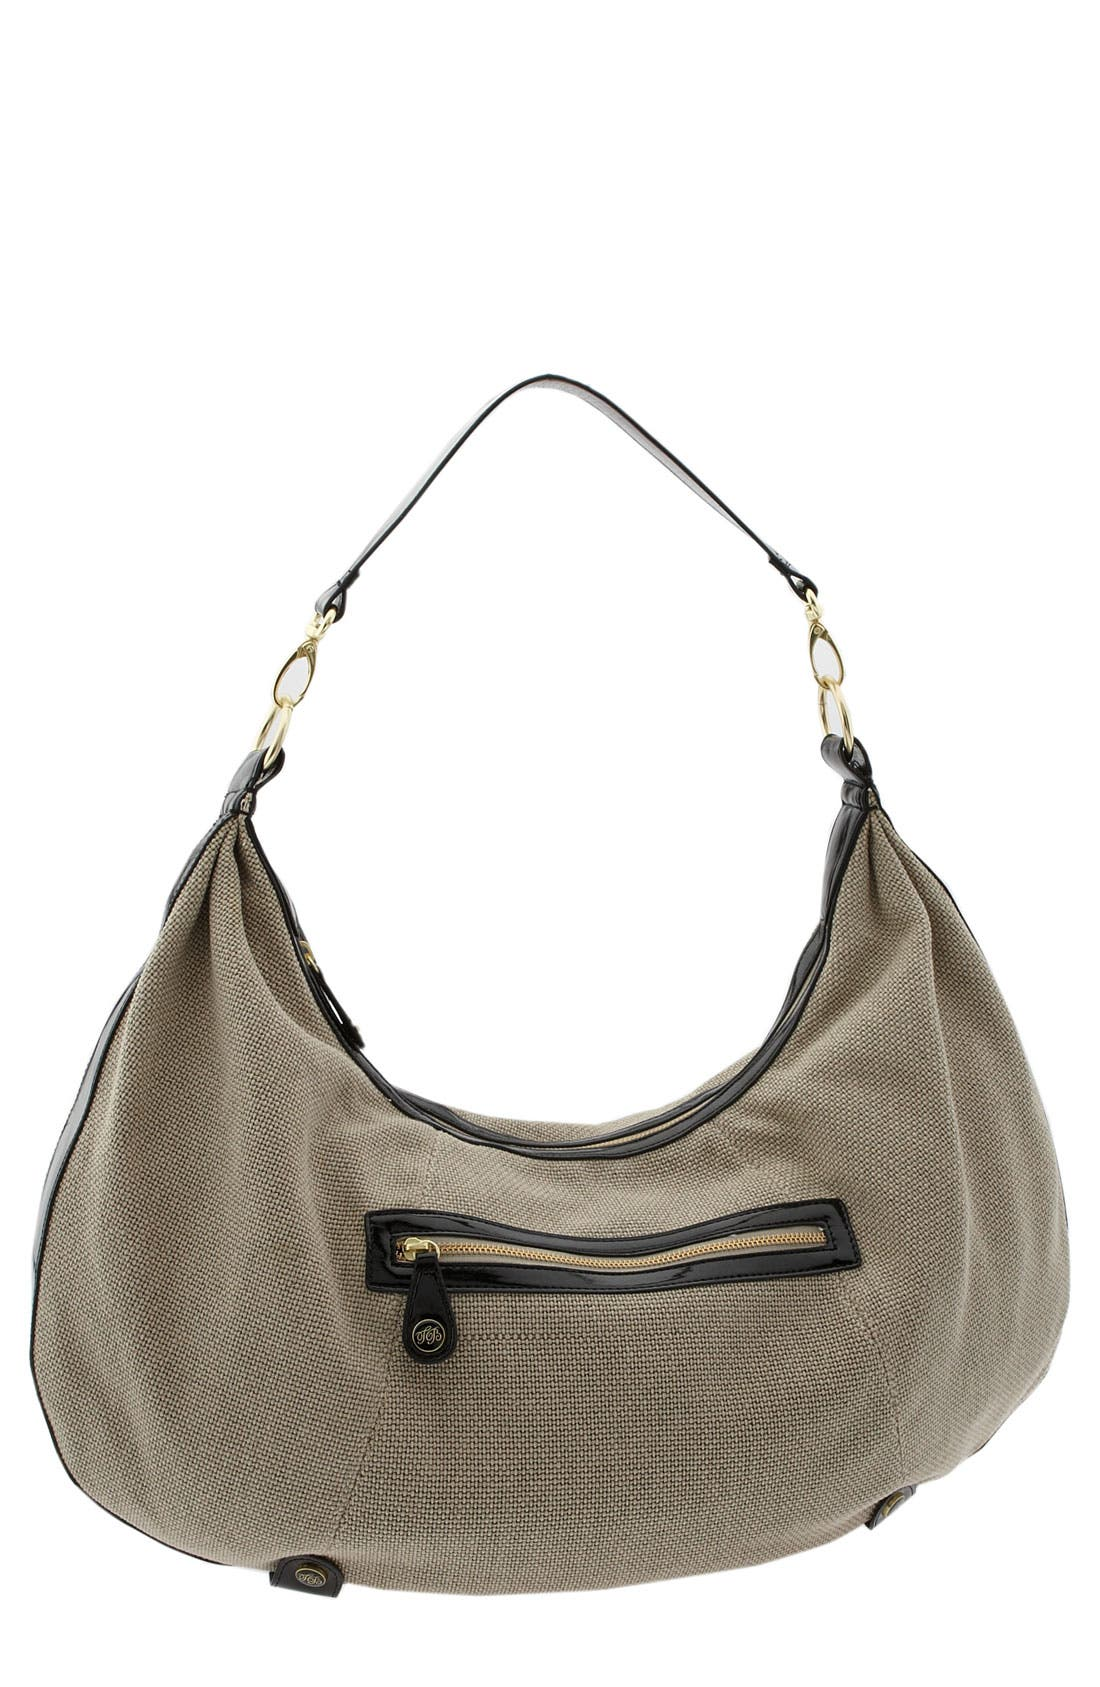 Alternate Image 1 Selected - Ted Baker London 'Oversized' Convertible Canvas Hobo